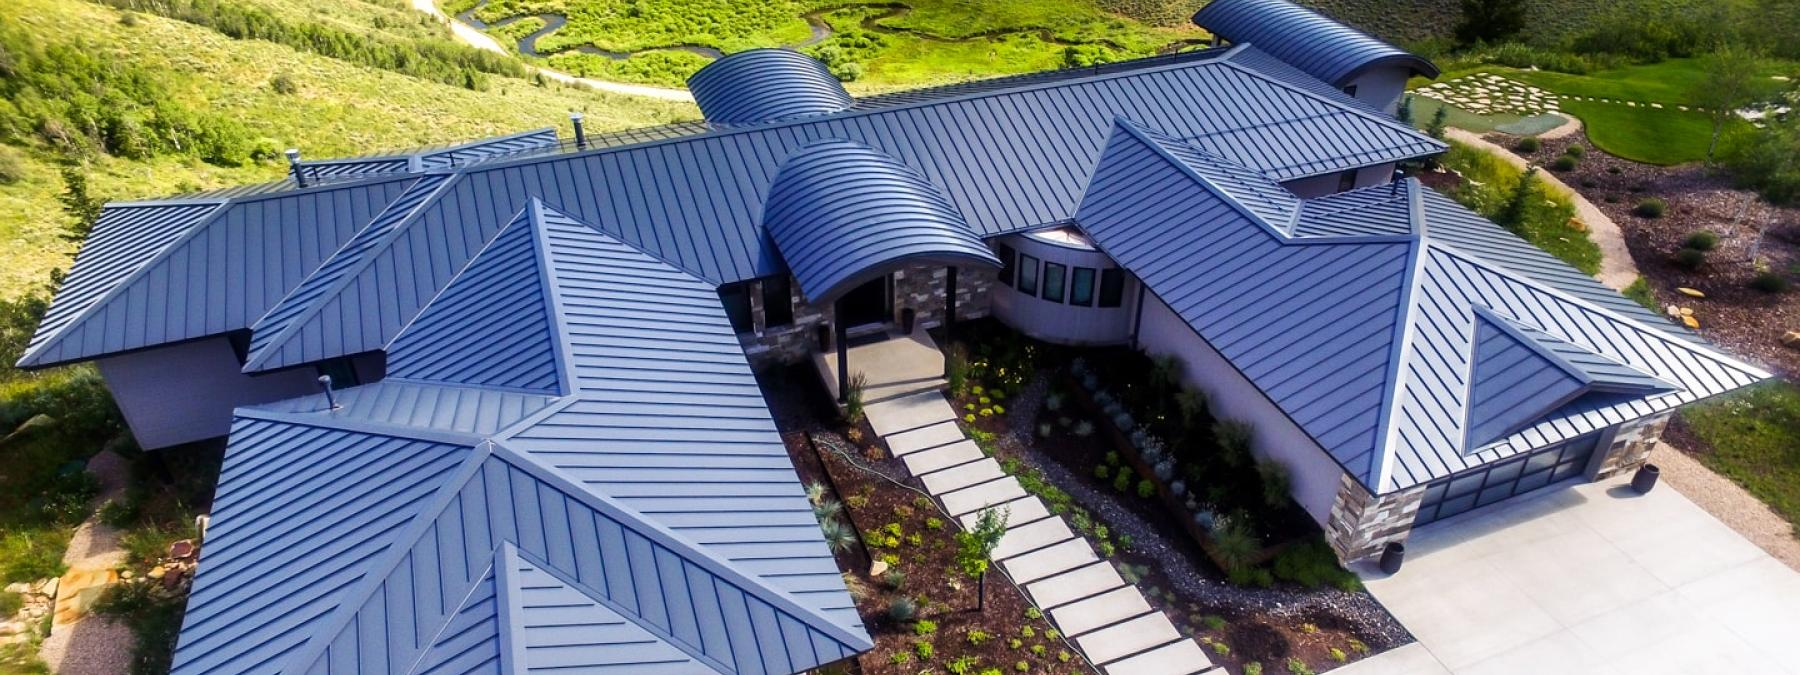 proposed octagonal steel roof R & m steel offers complete manufacturing service from custom design through delivery of pre-engineered metal building systems all buildings meet applicable codes and incorporate state-of-the-art computer-aided design and fabrication technology.